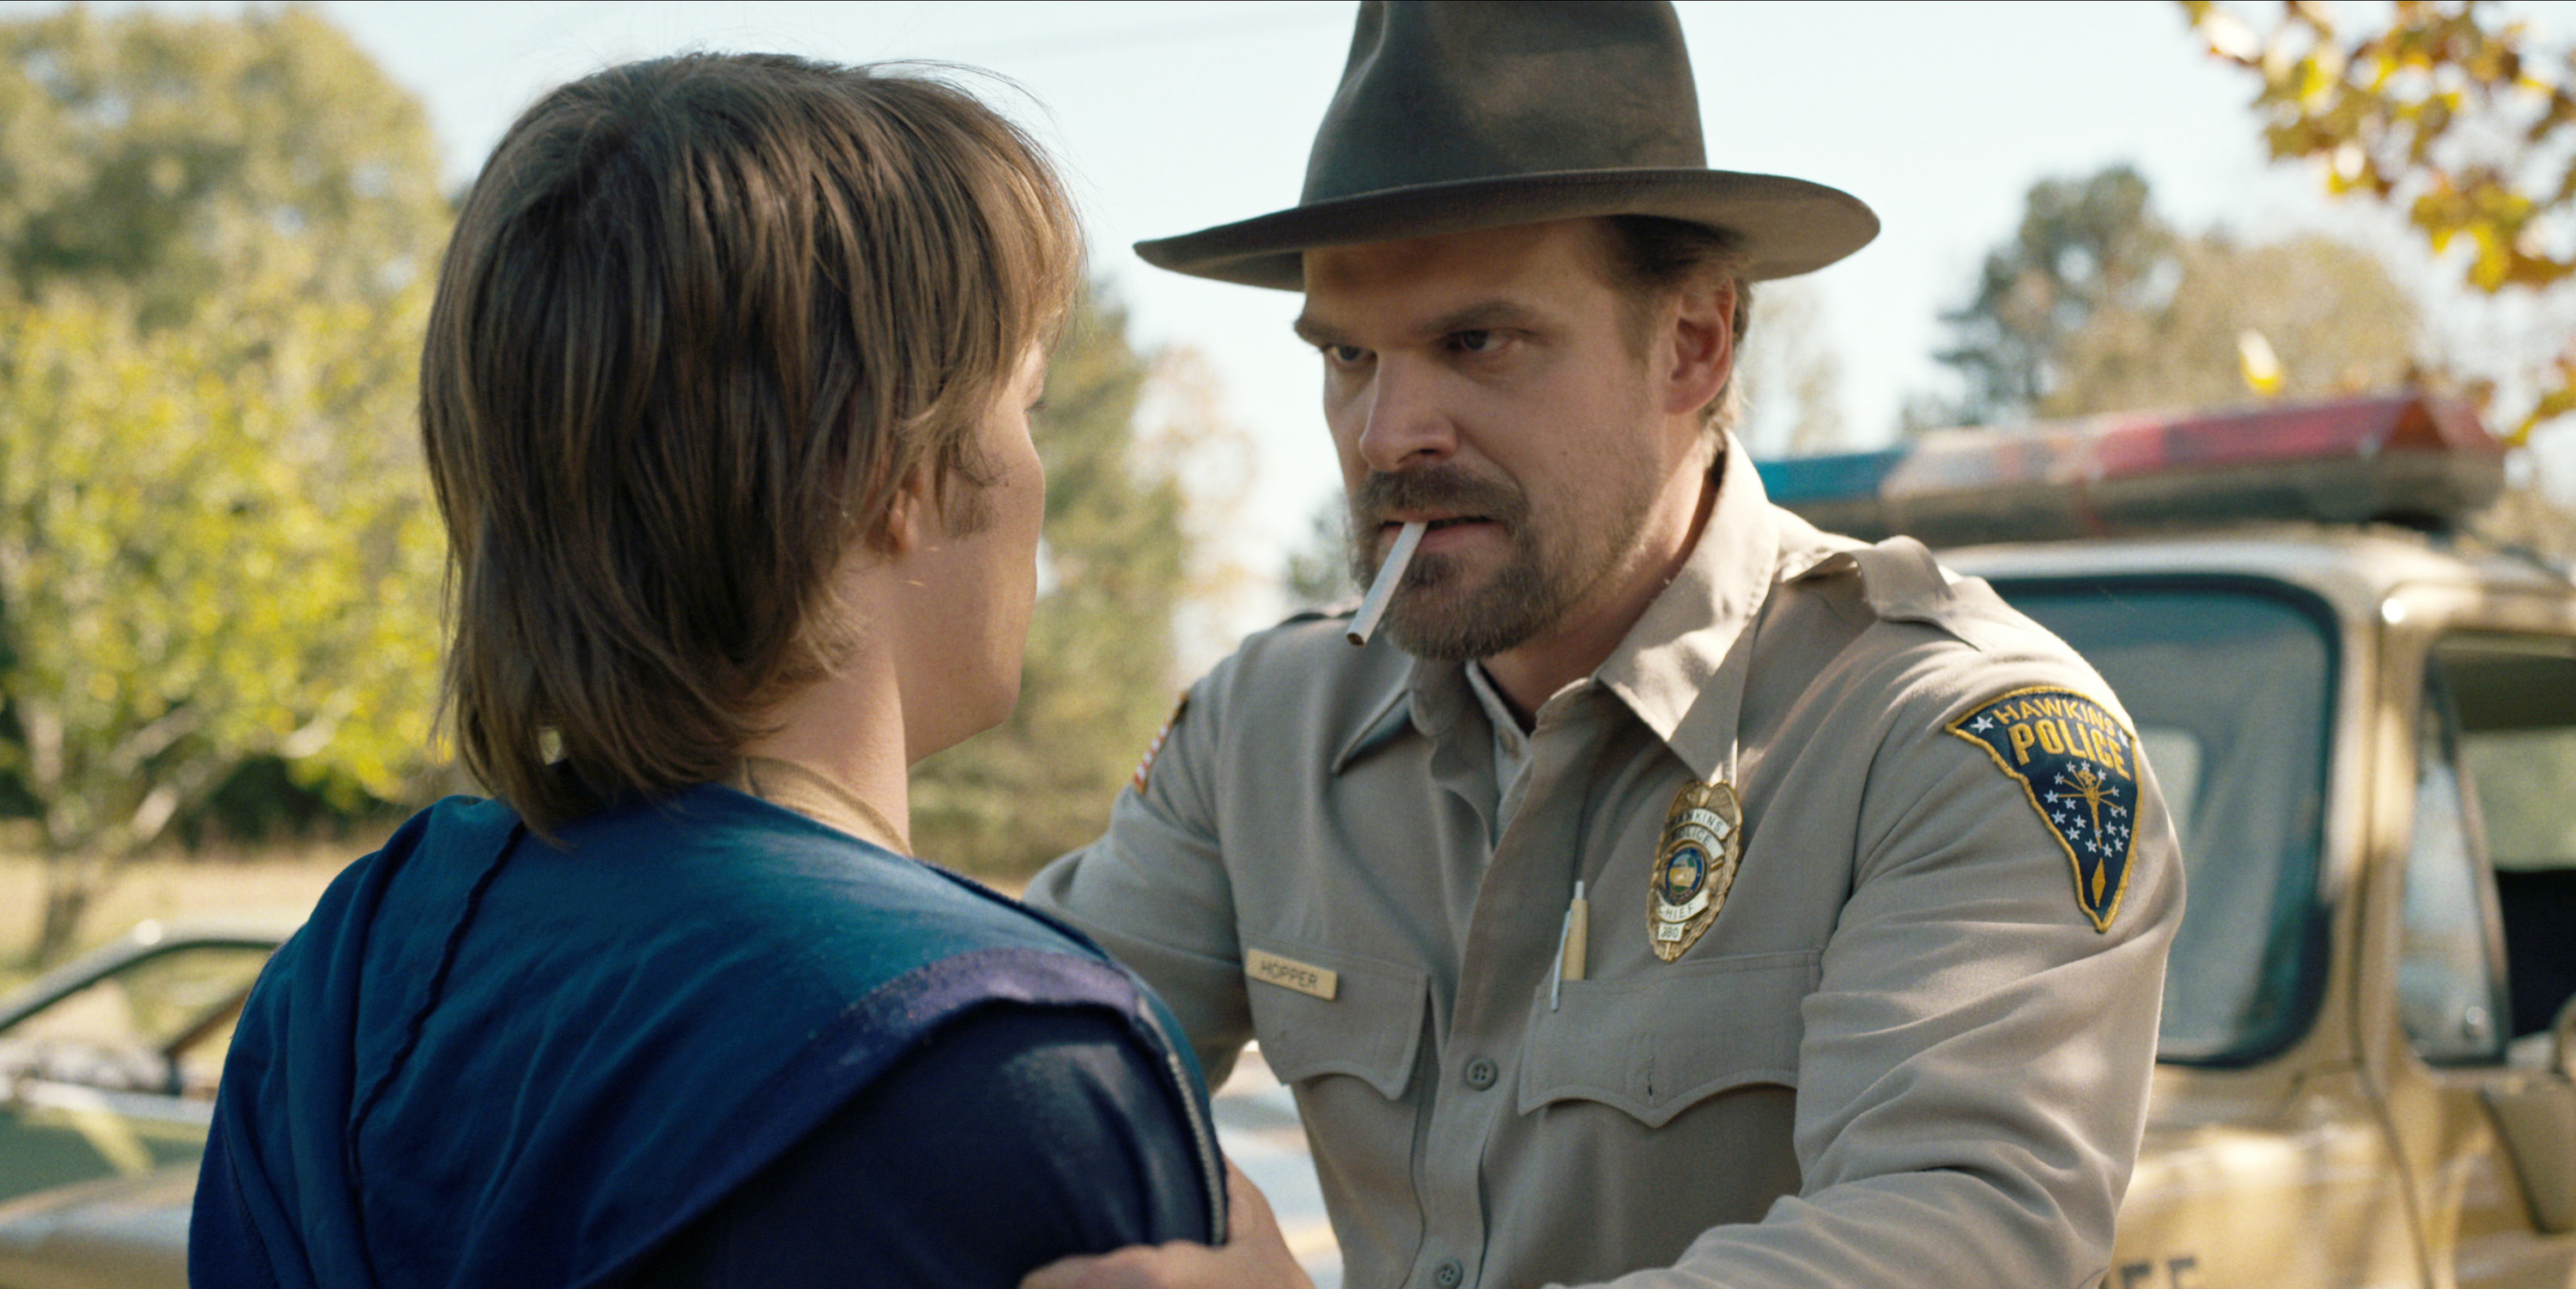 David's Stranger Things character holding onto someone as a cigarette hangs from his mouth